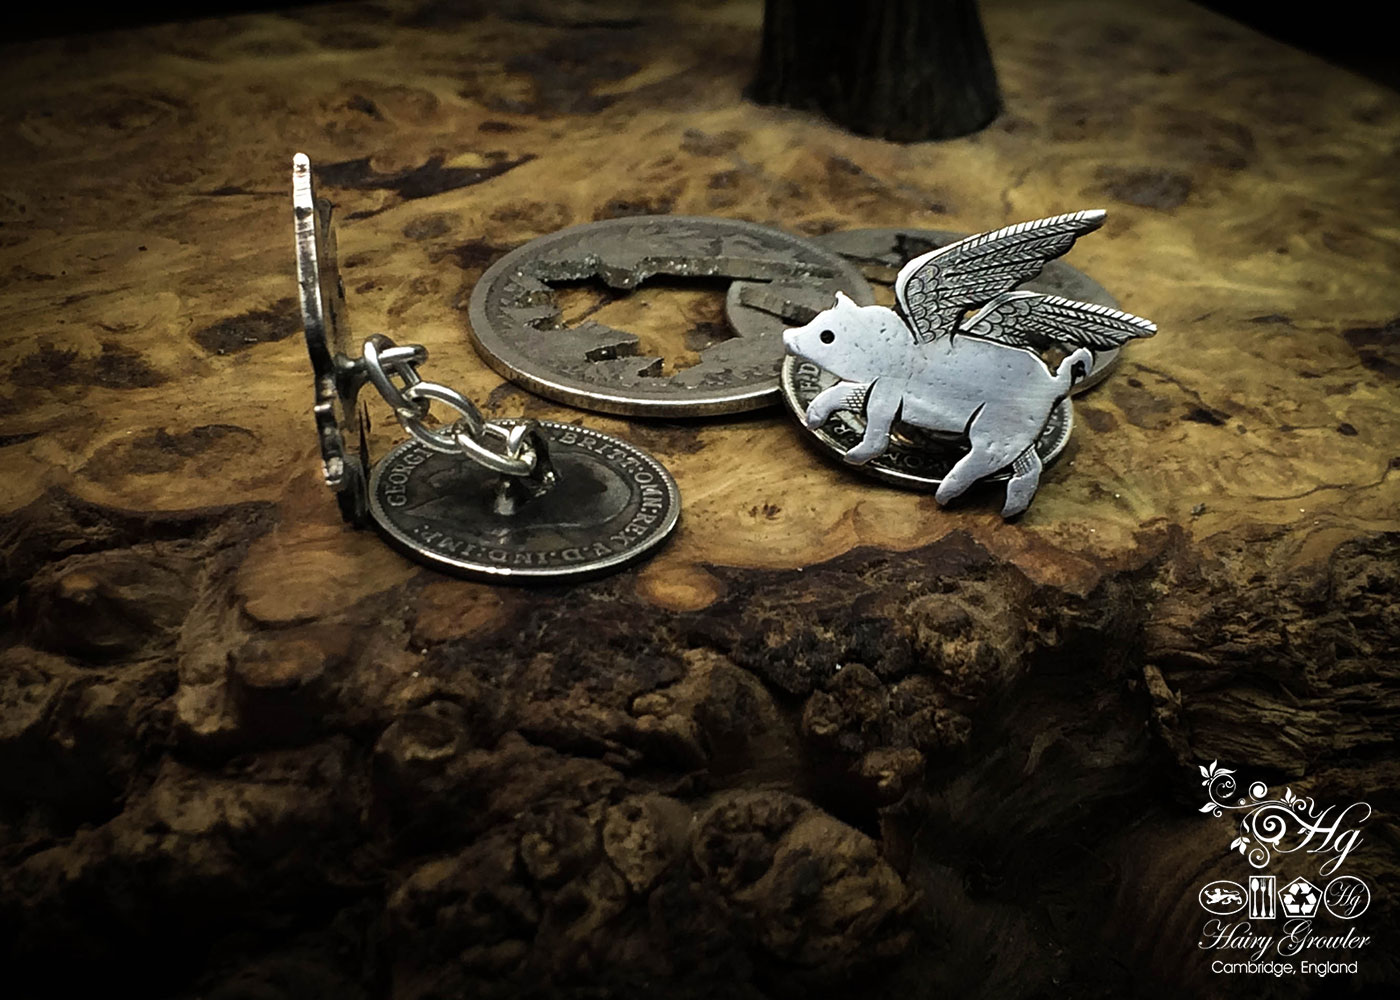 Flying pig cufflinks handcrafted and recycled from sterling silver shillings and threepence coins